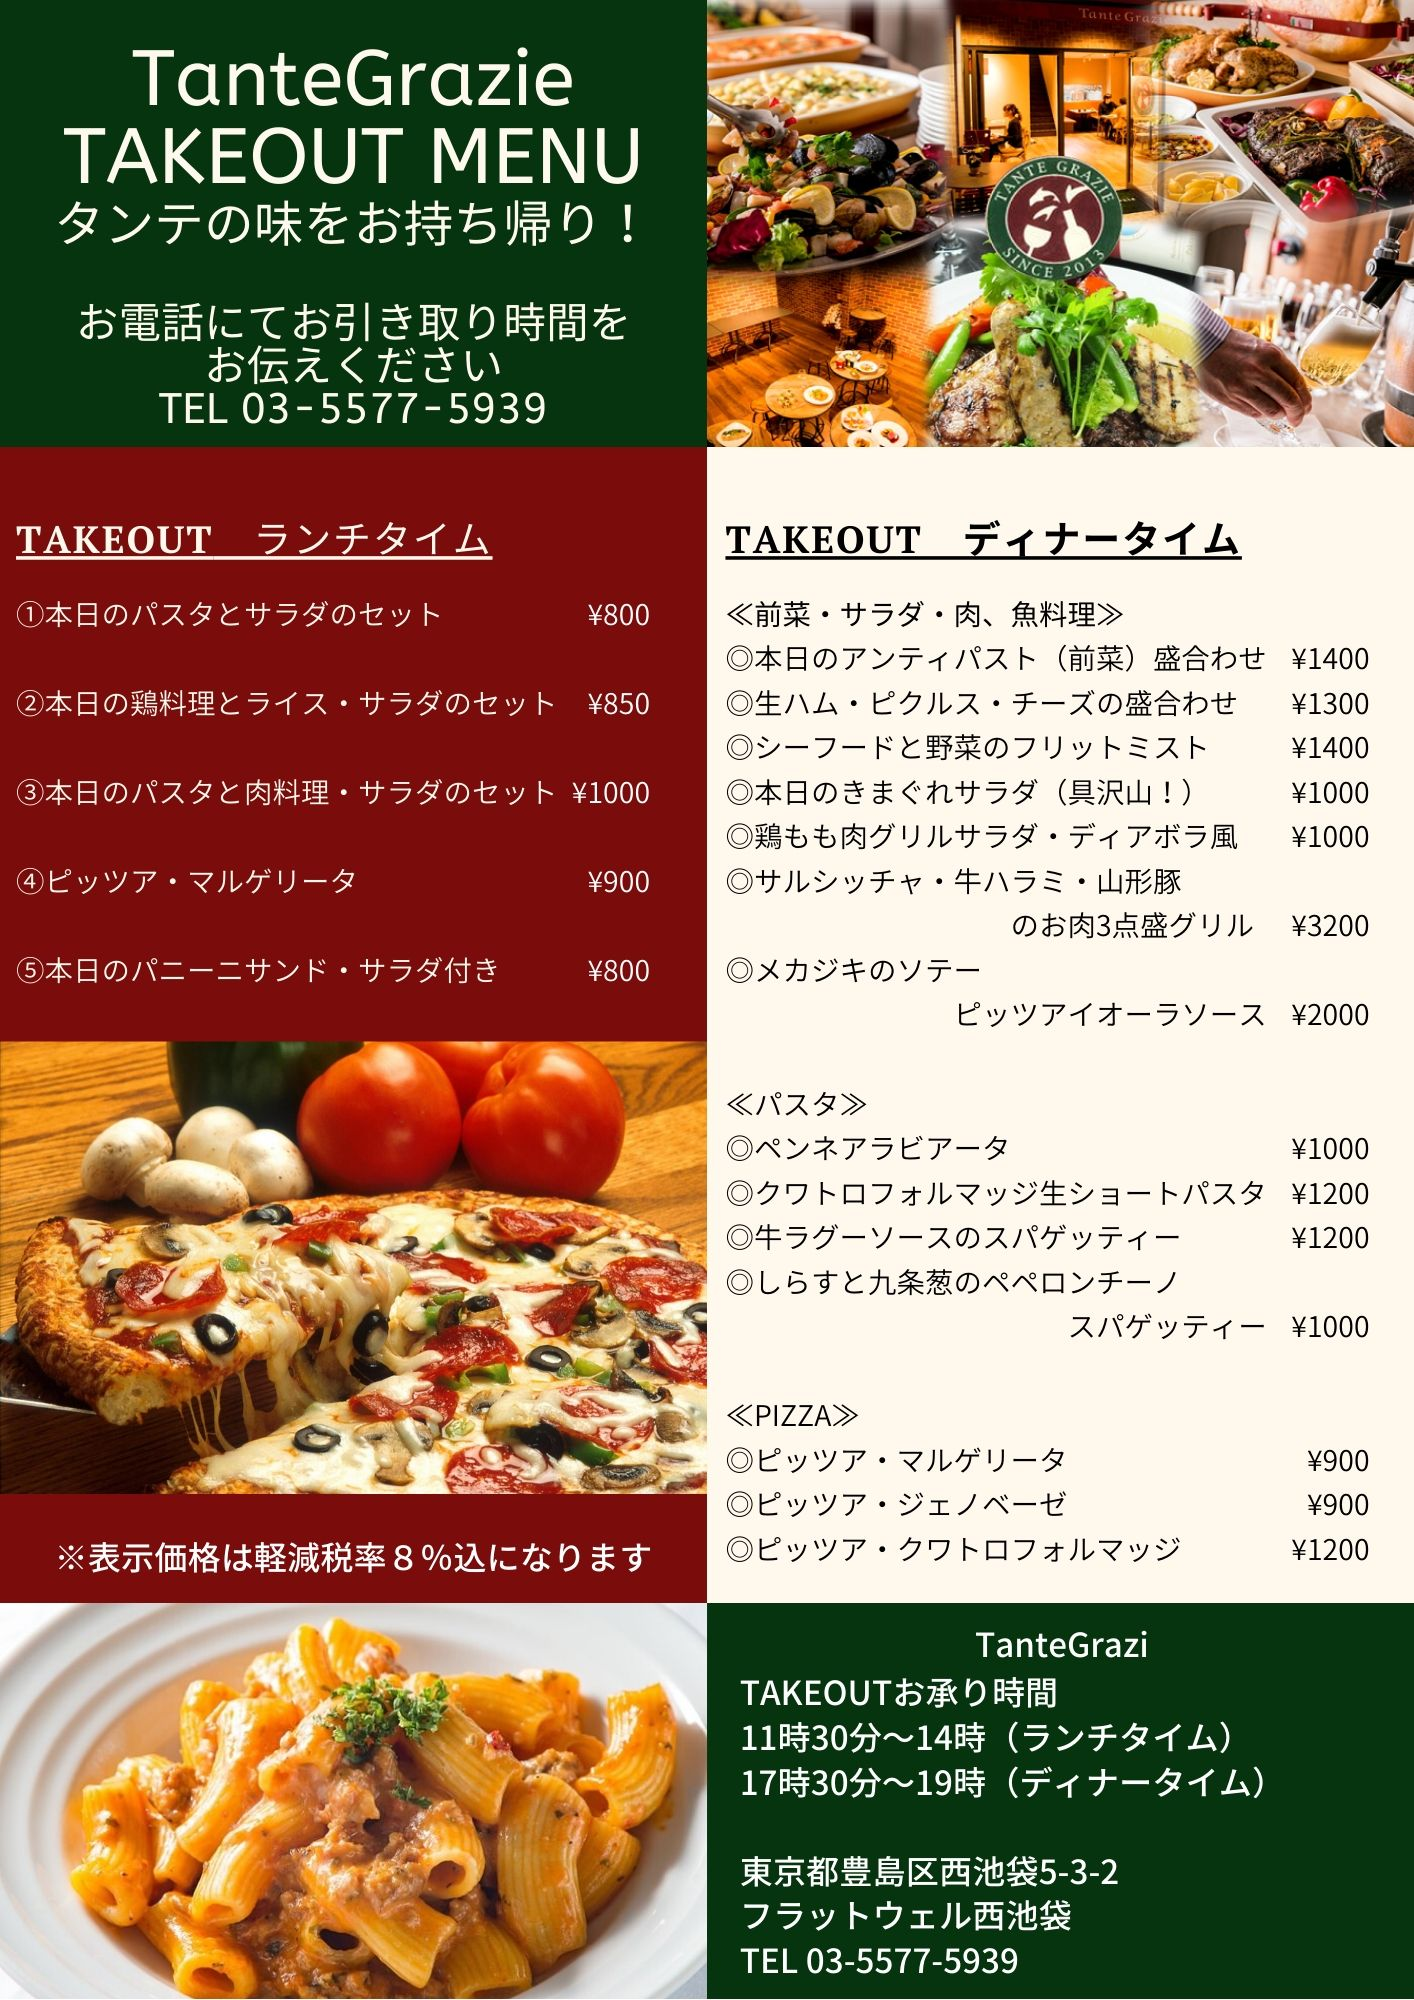 TAKEOUT FOOD MENU